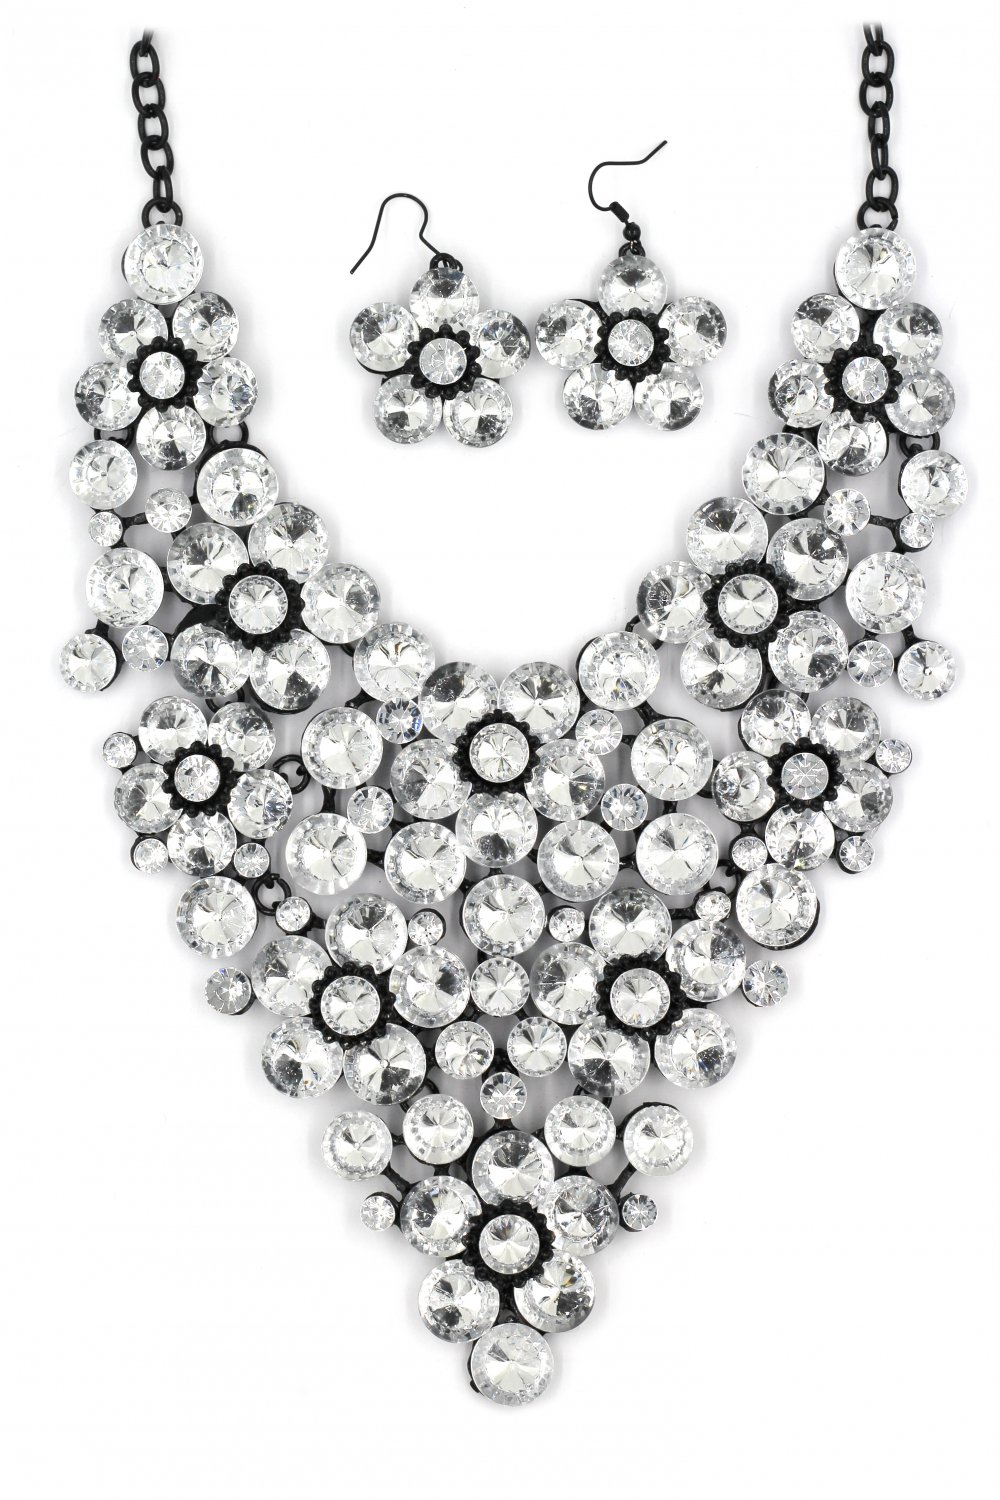 Crystal white flowers necklace sets